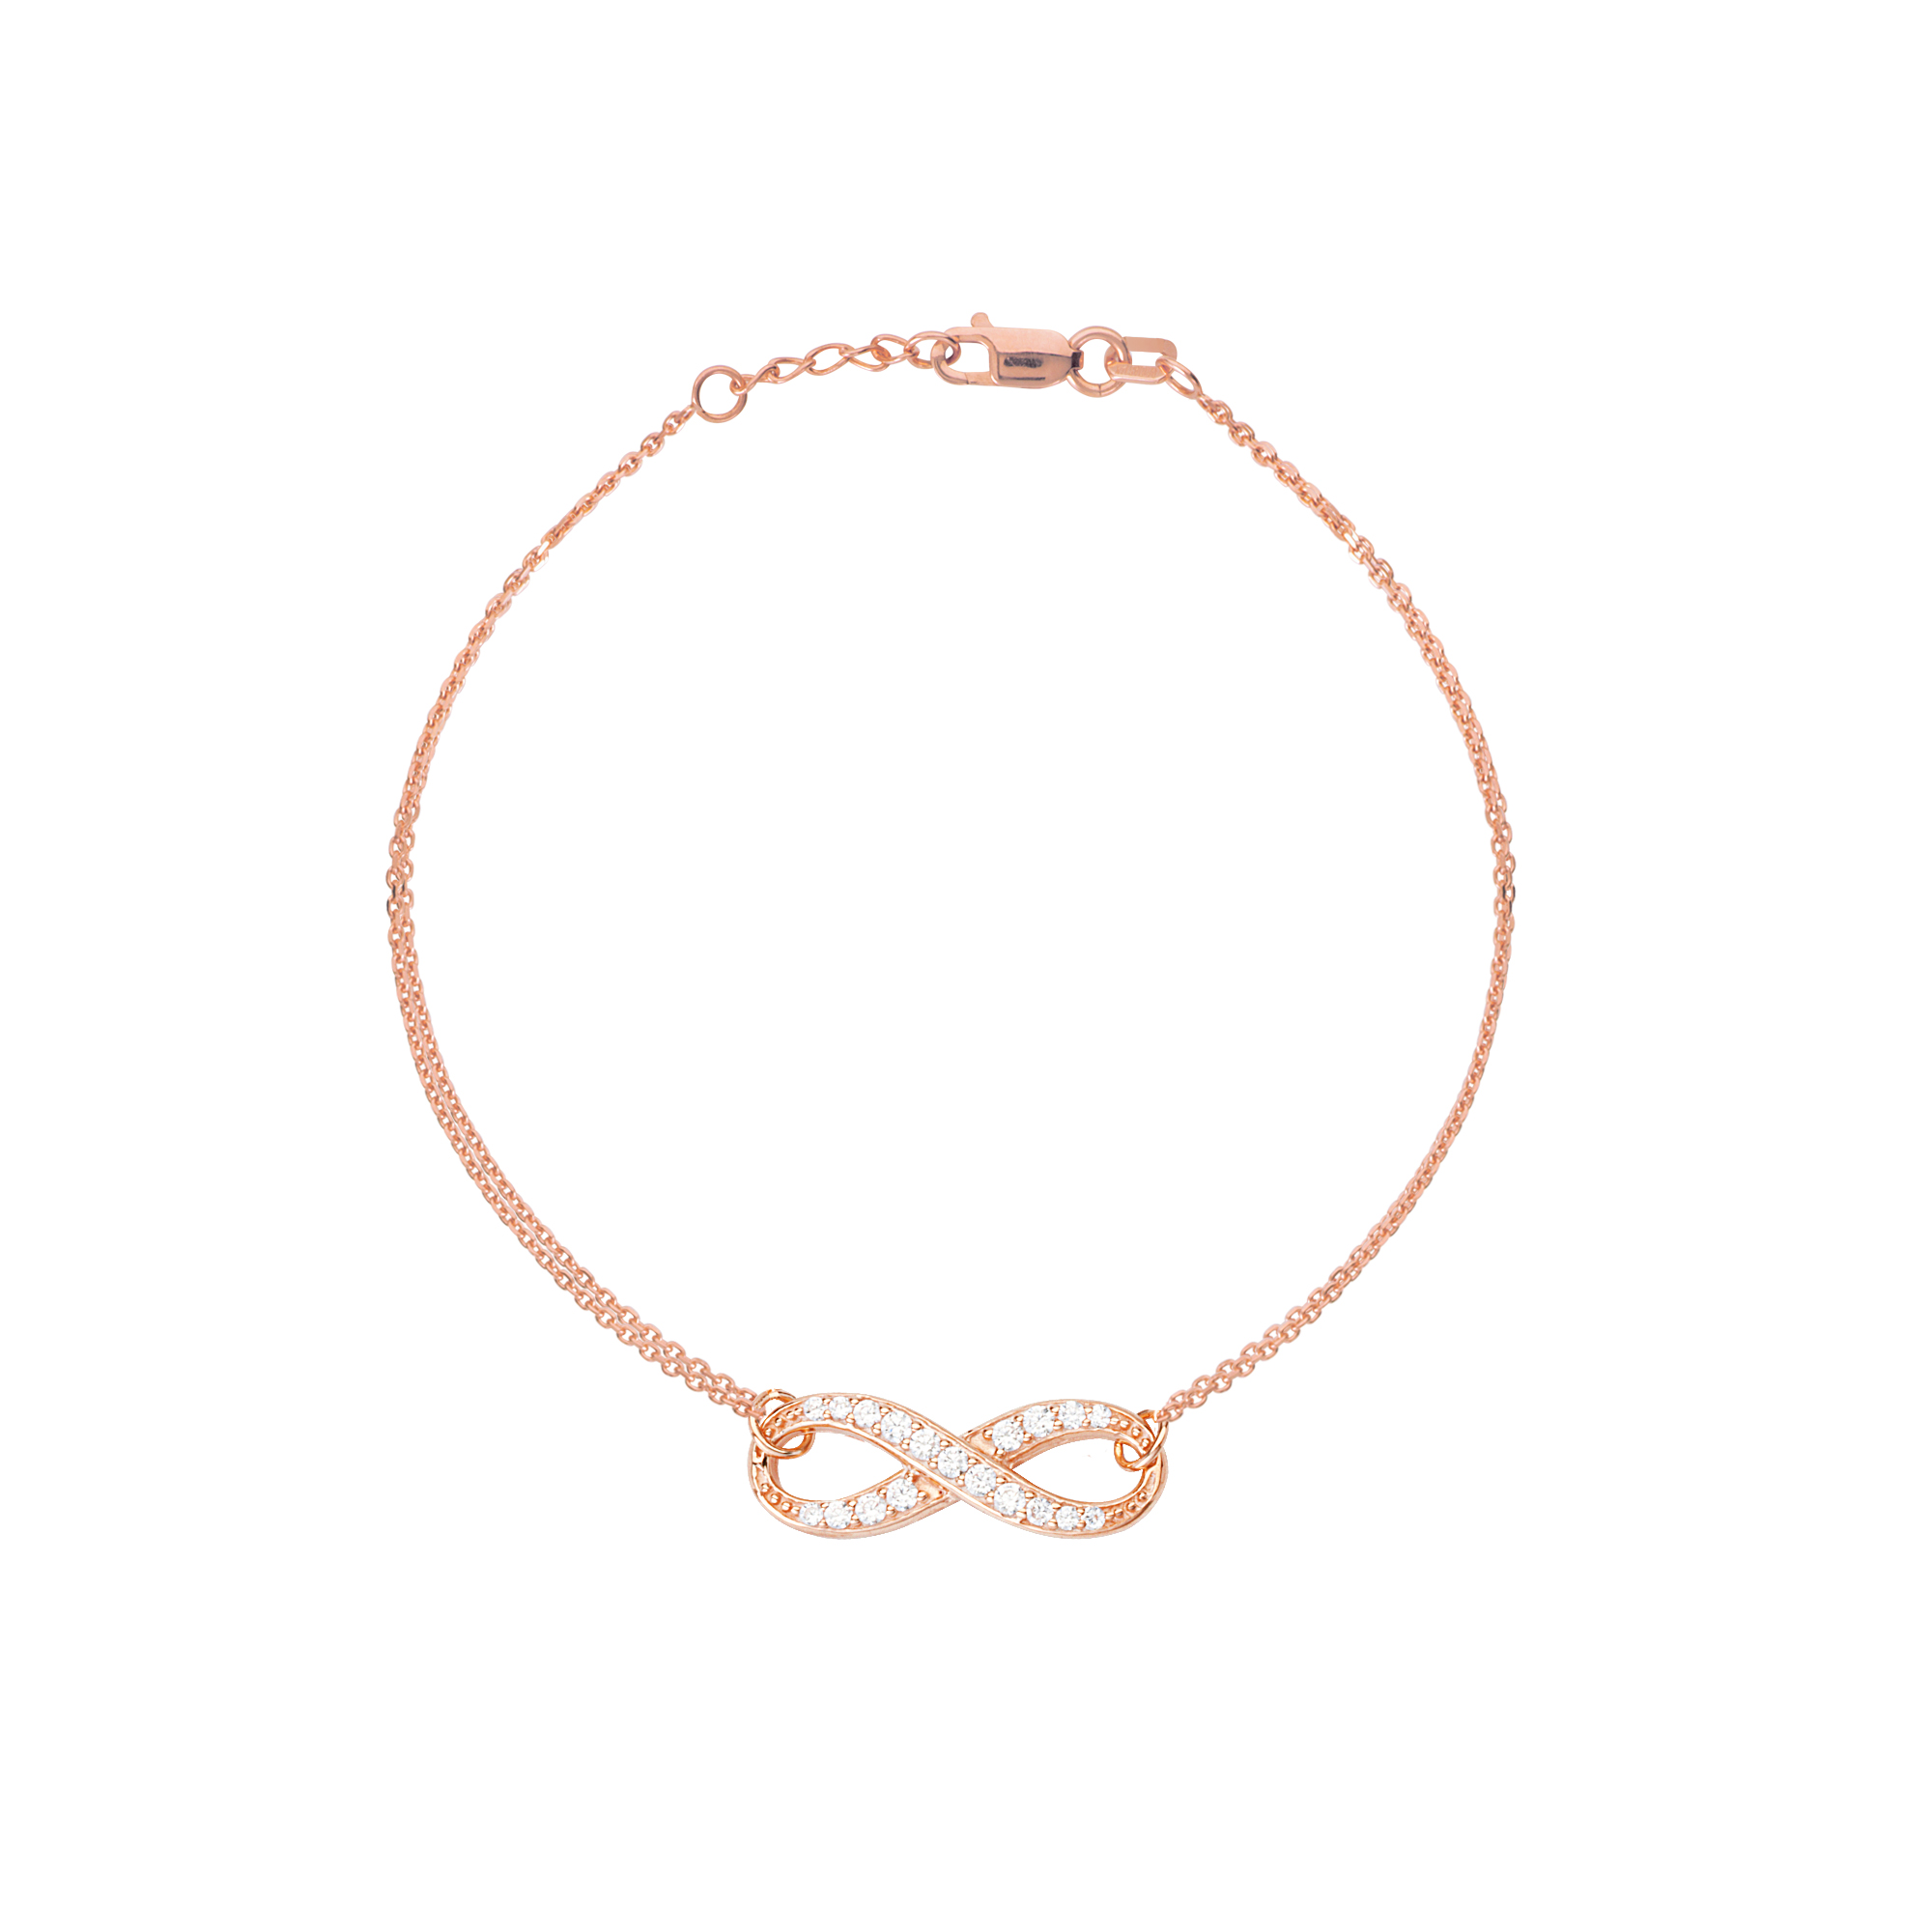 tiffany size dsc bracelet products timpanys co rose copy gold small infinity